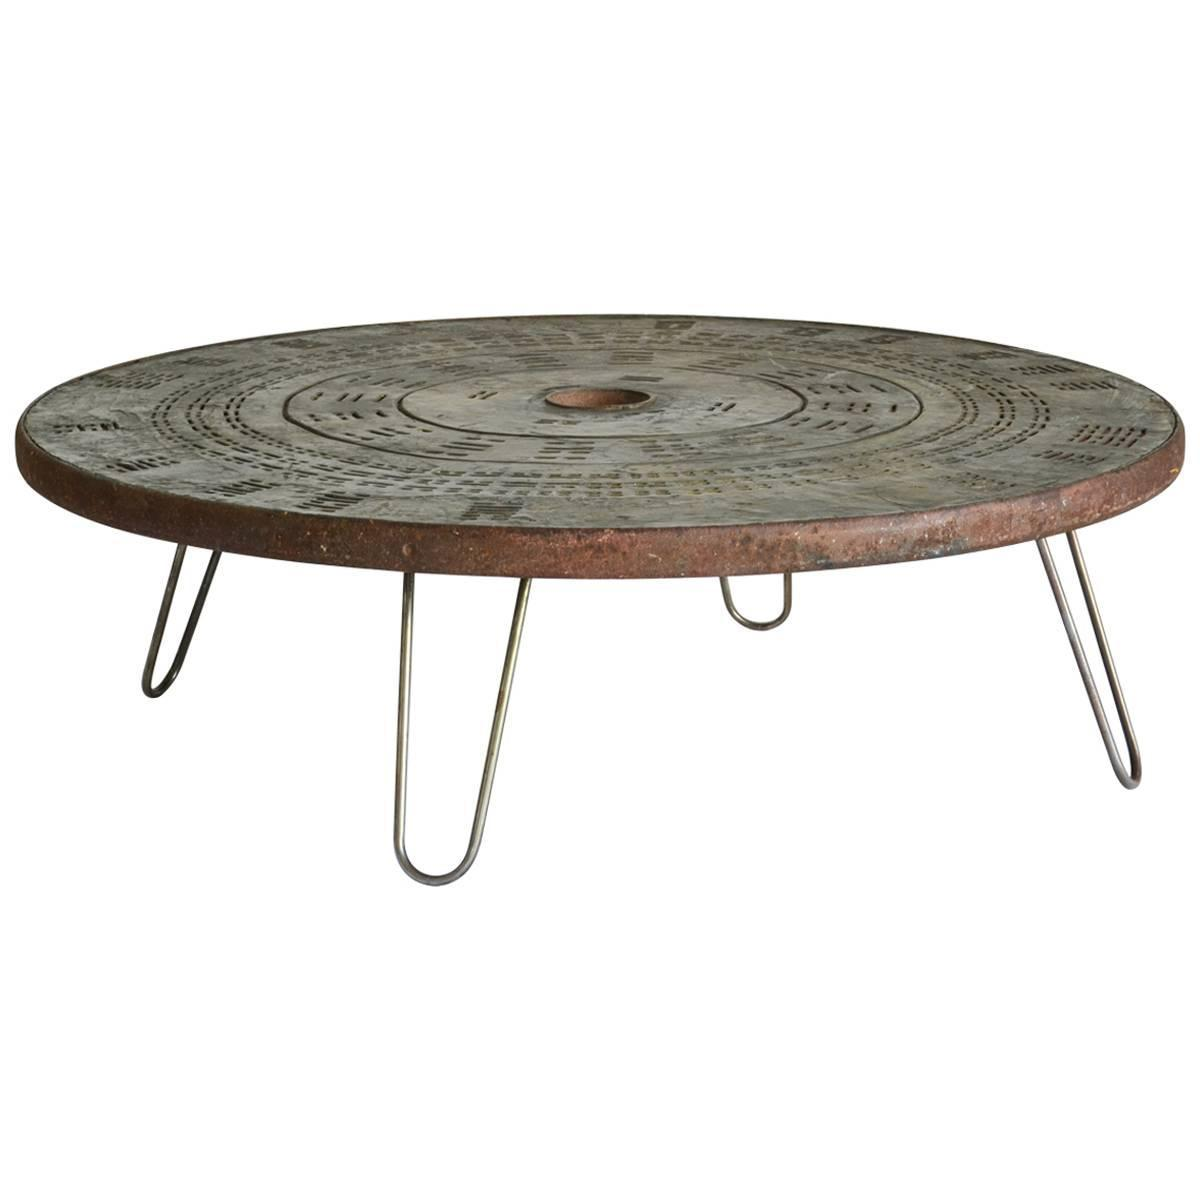 Round Wood Hairpin Coffee Table: 1960s Round Metal Coffee Table With Hairpin Legs For Sale